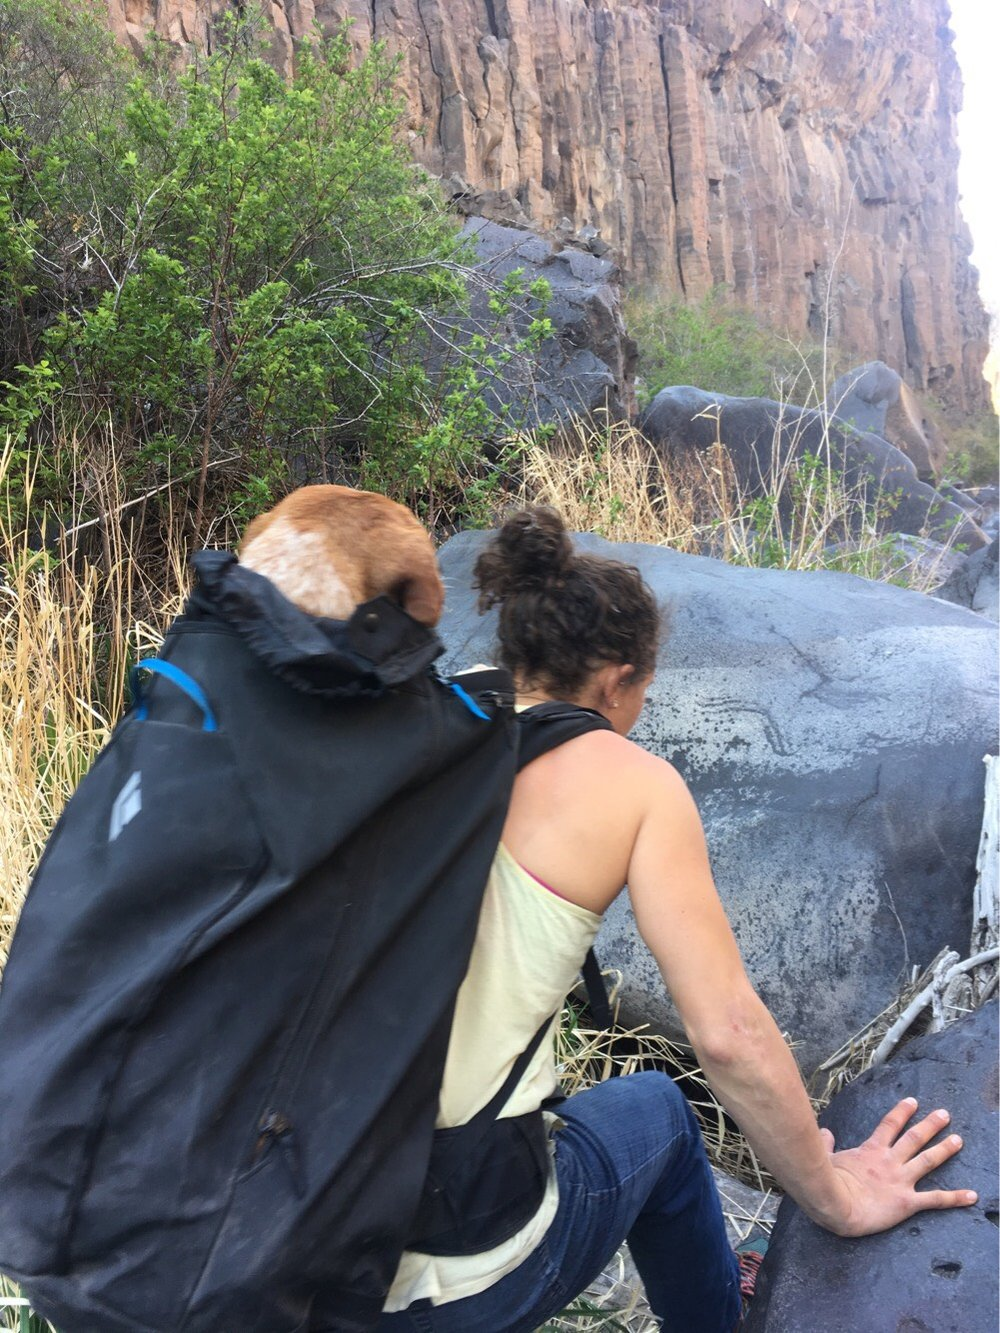 Rebecca Yaguda finds a new use for her pack in helping a freezing wet dog out of The Gorge at Smith Rock.